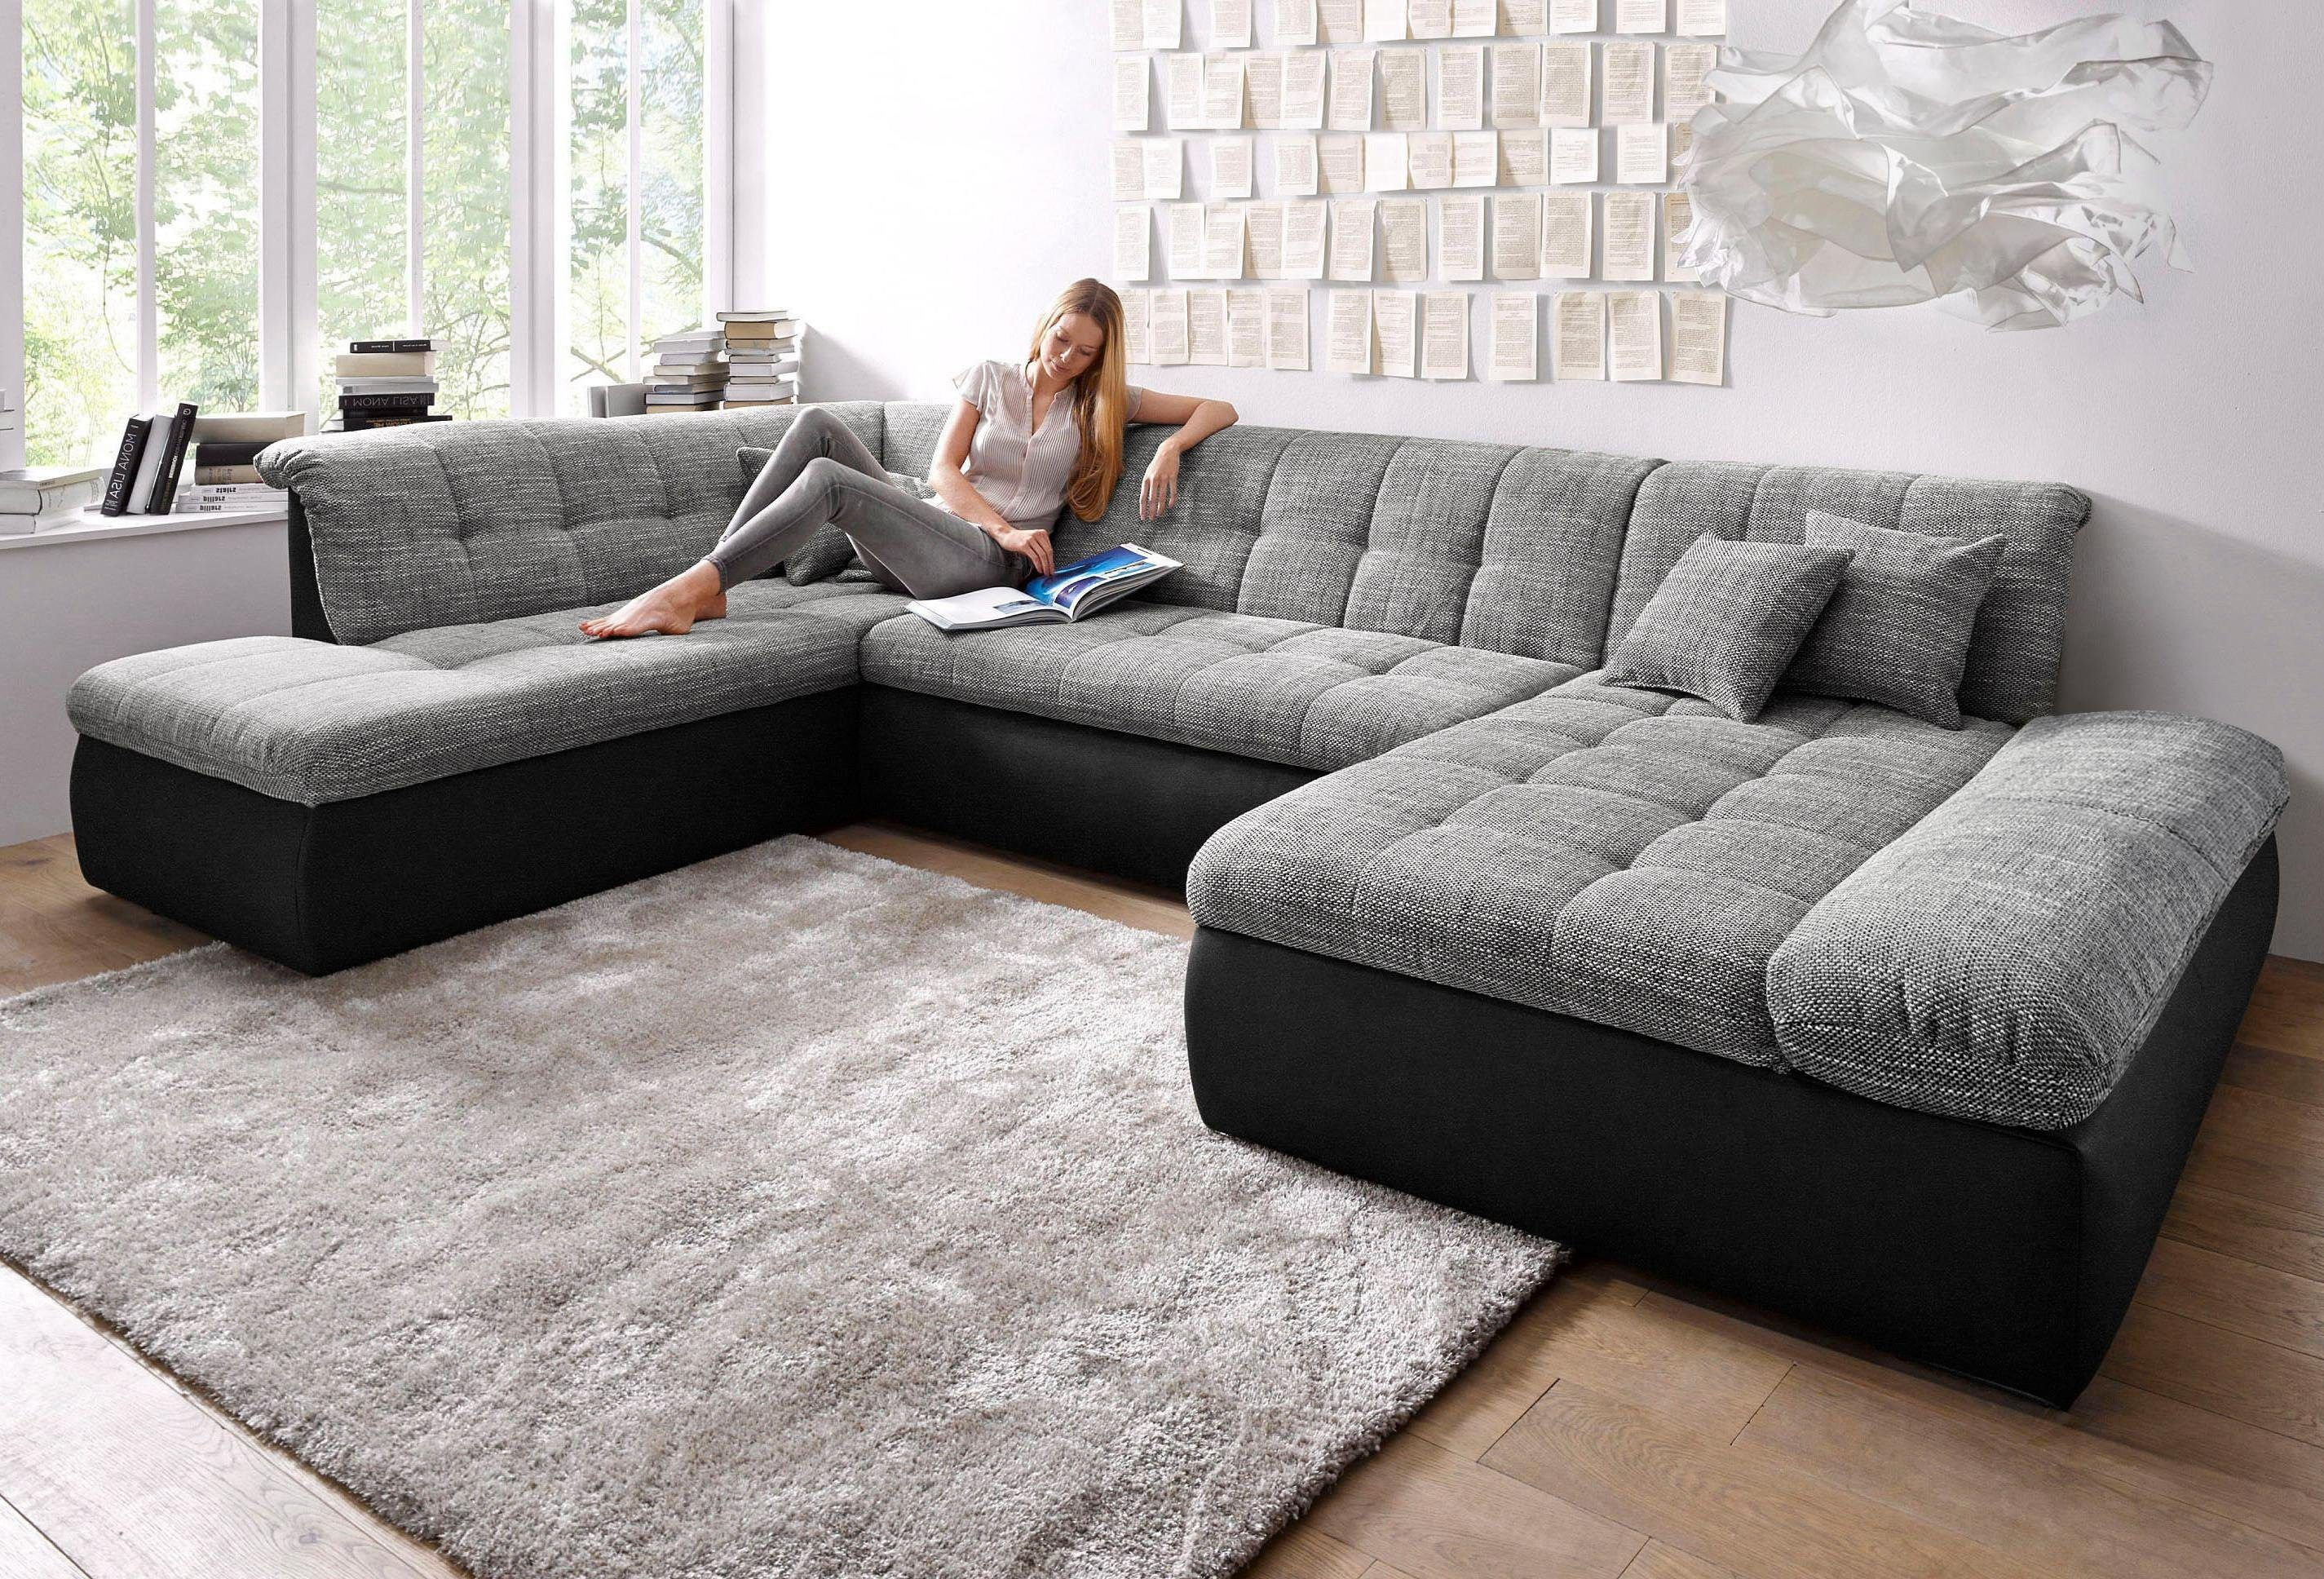 Domo Collection Wohnlandschaft Xxl Wahlweise Mit Bettfunktion